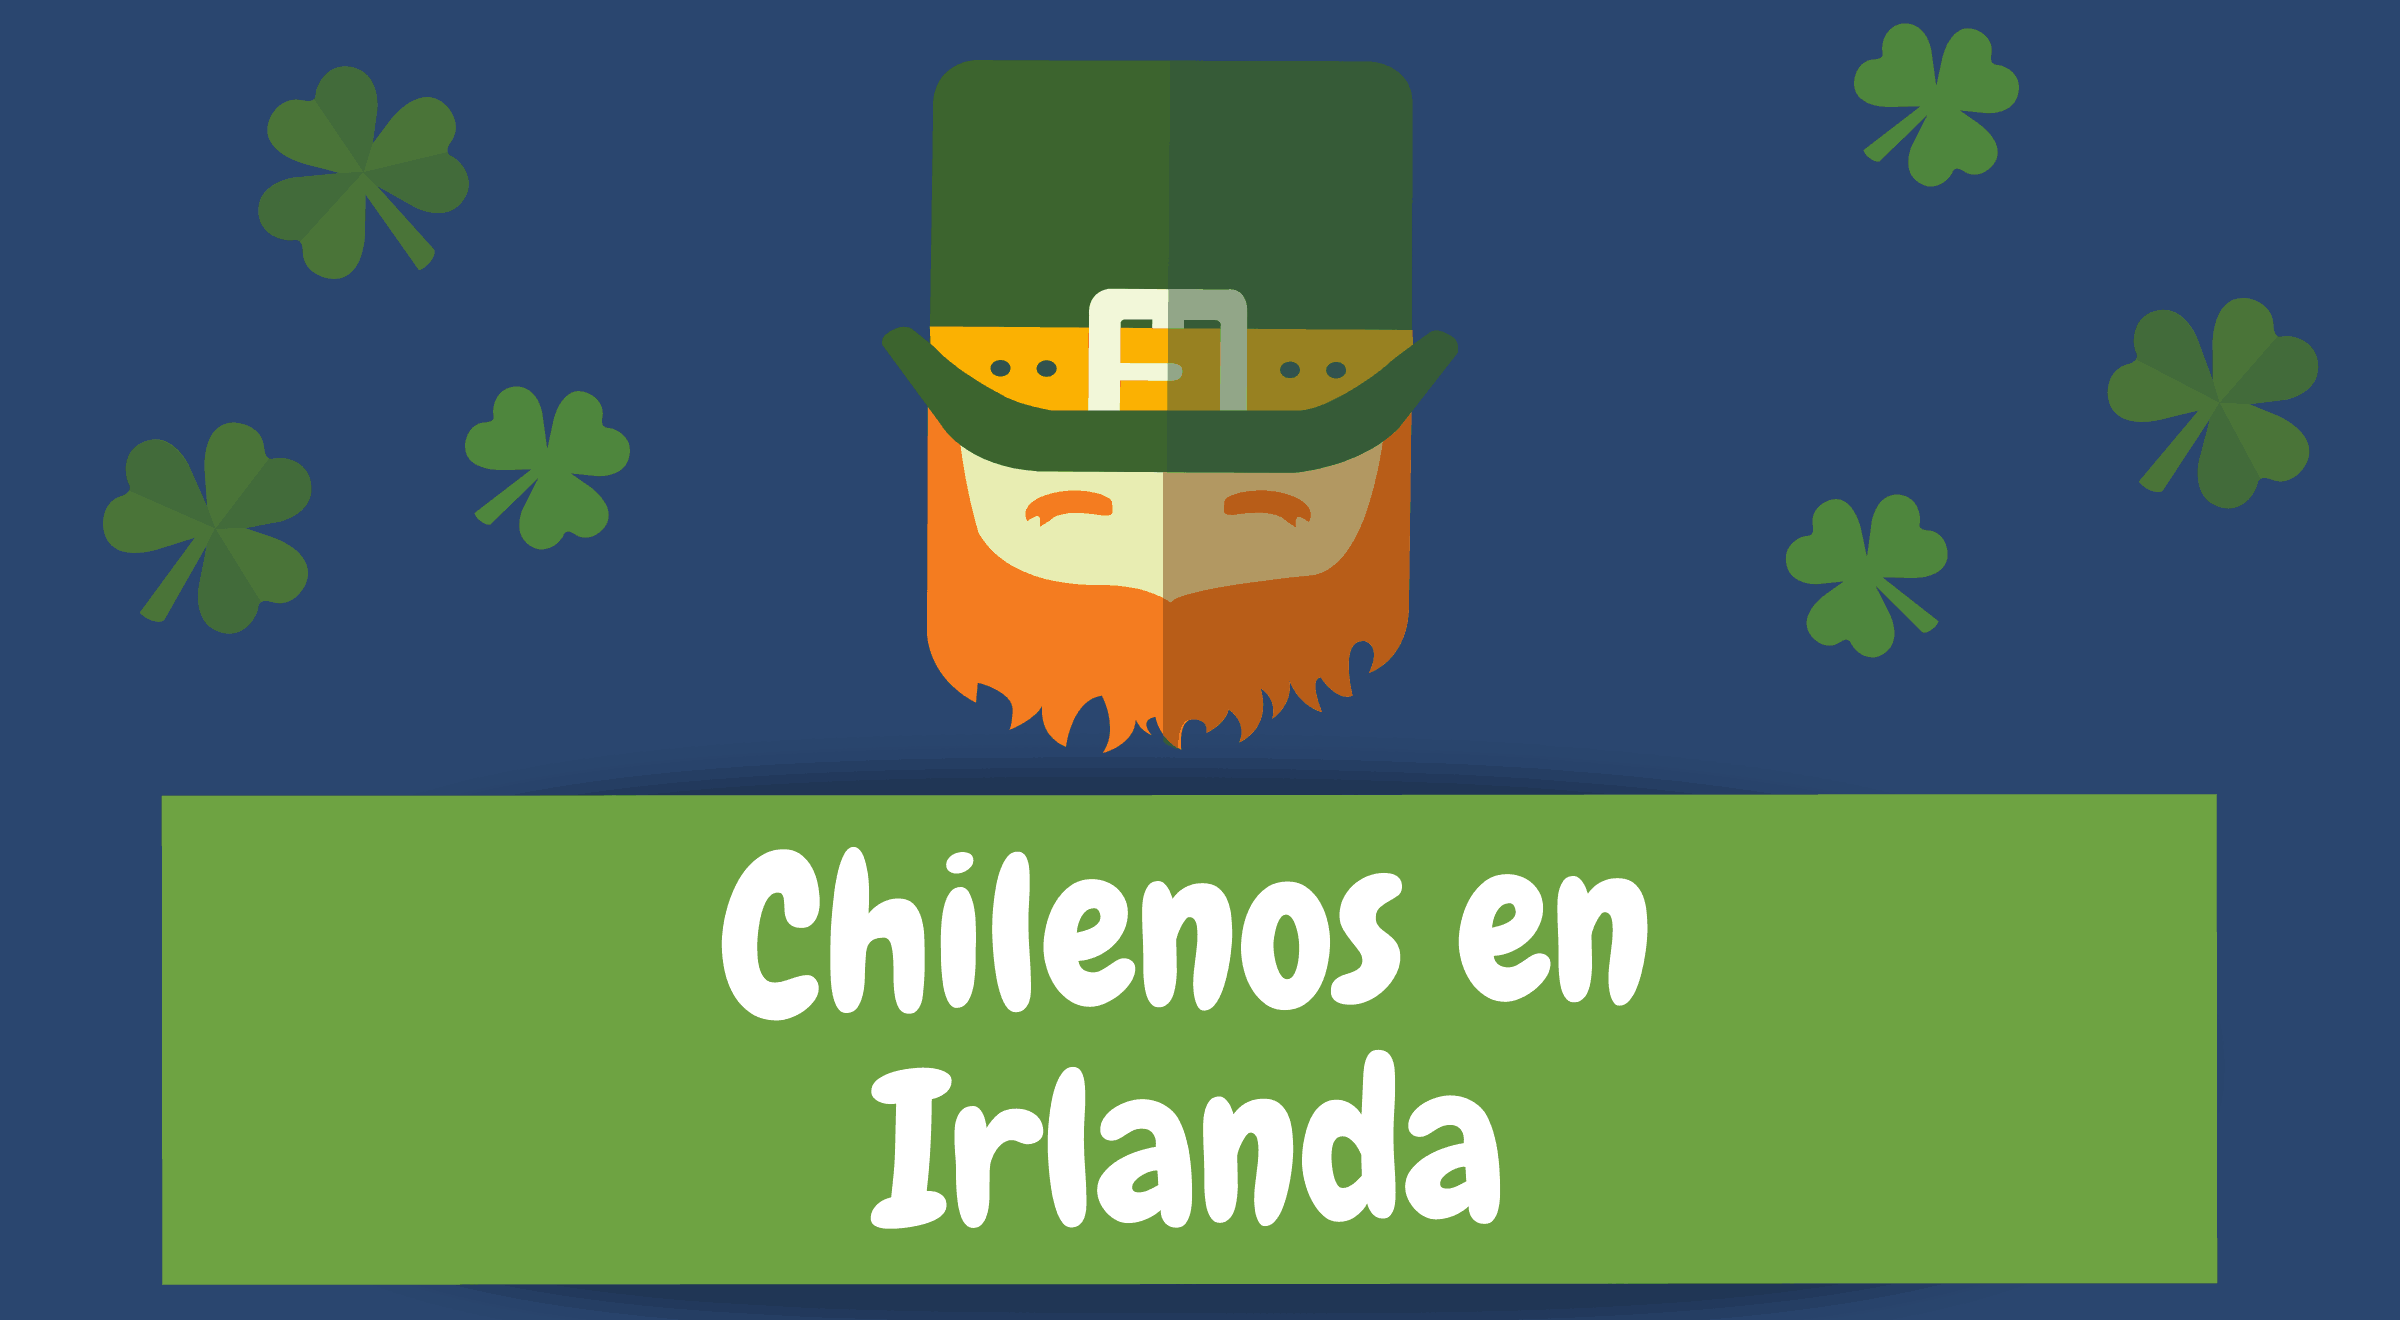 Chilenos en Irlanda - Working Holiday Irlanda 2019 - Working Holiday Irlanda Chile